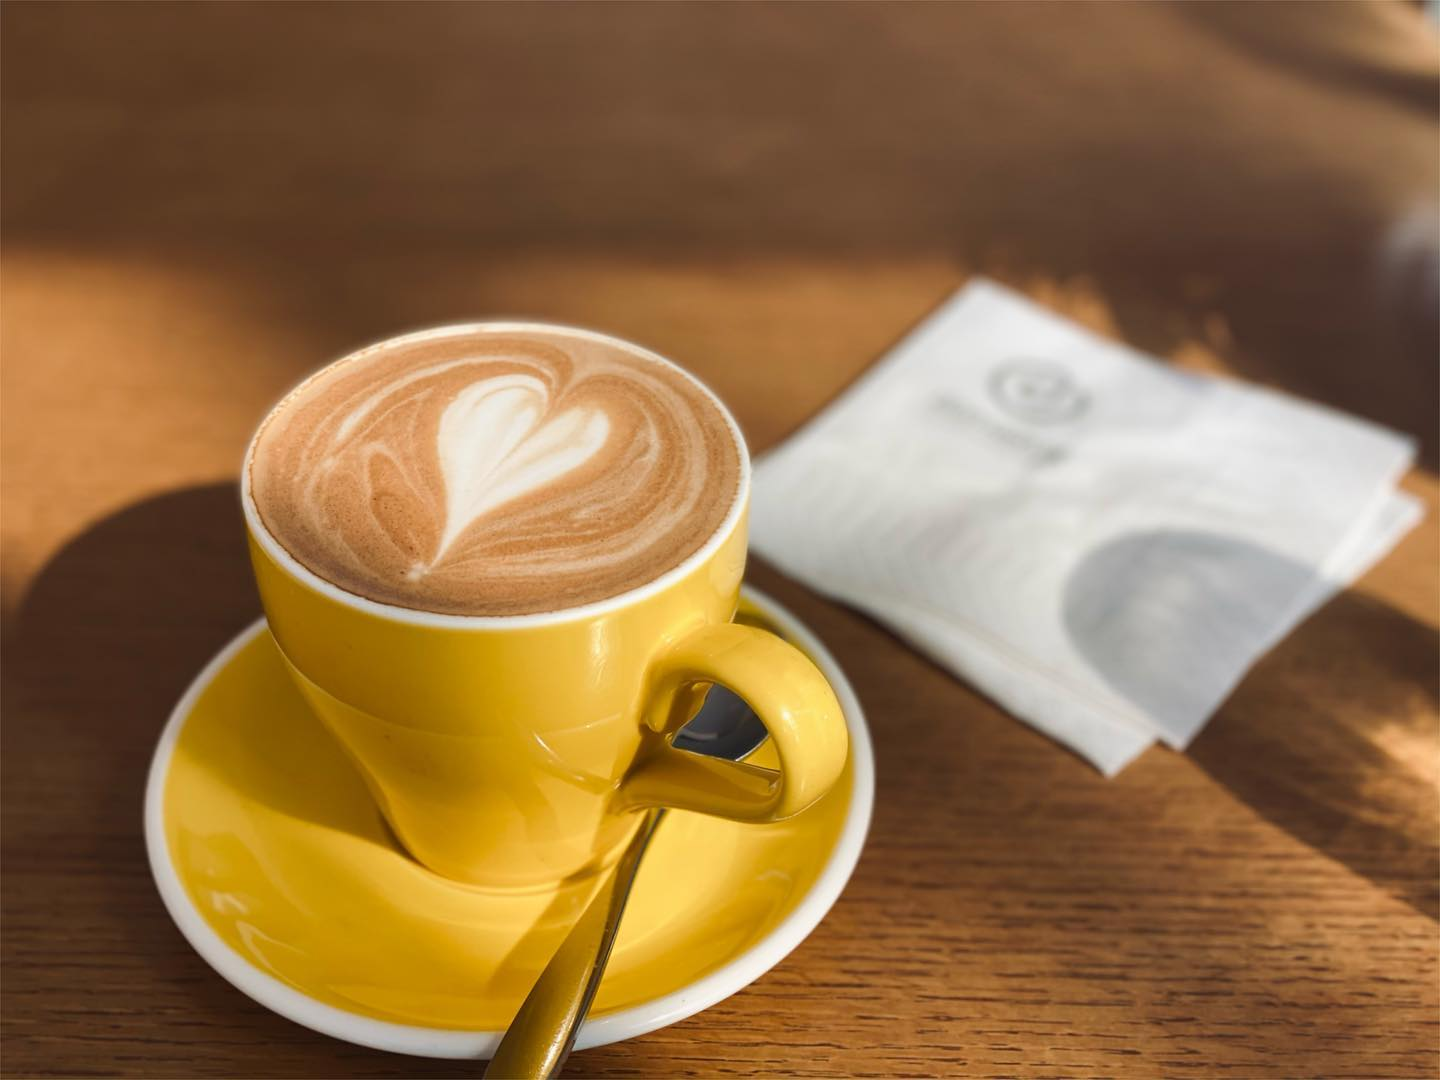 Start your morning off with a steamy cup of coffee at Domain.